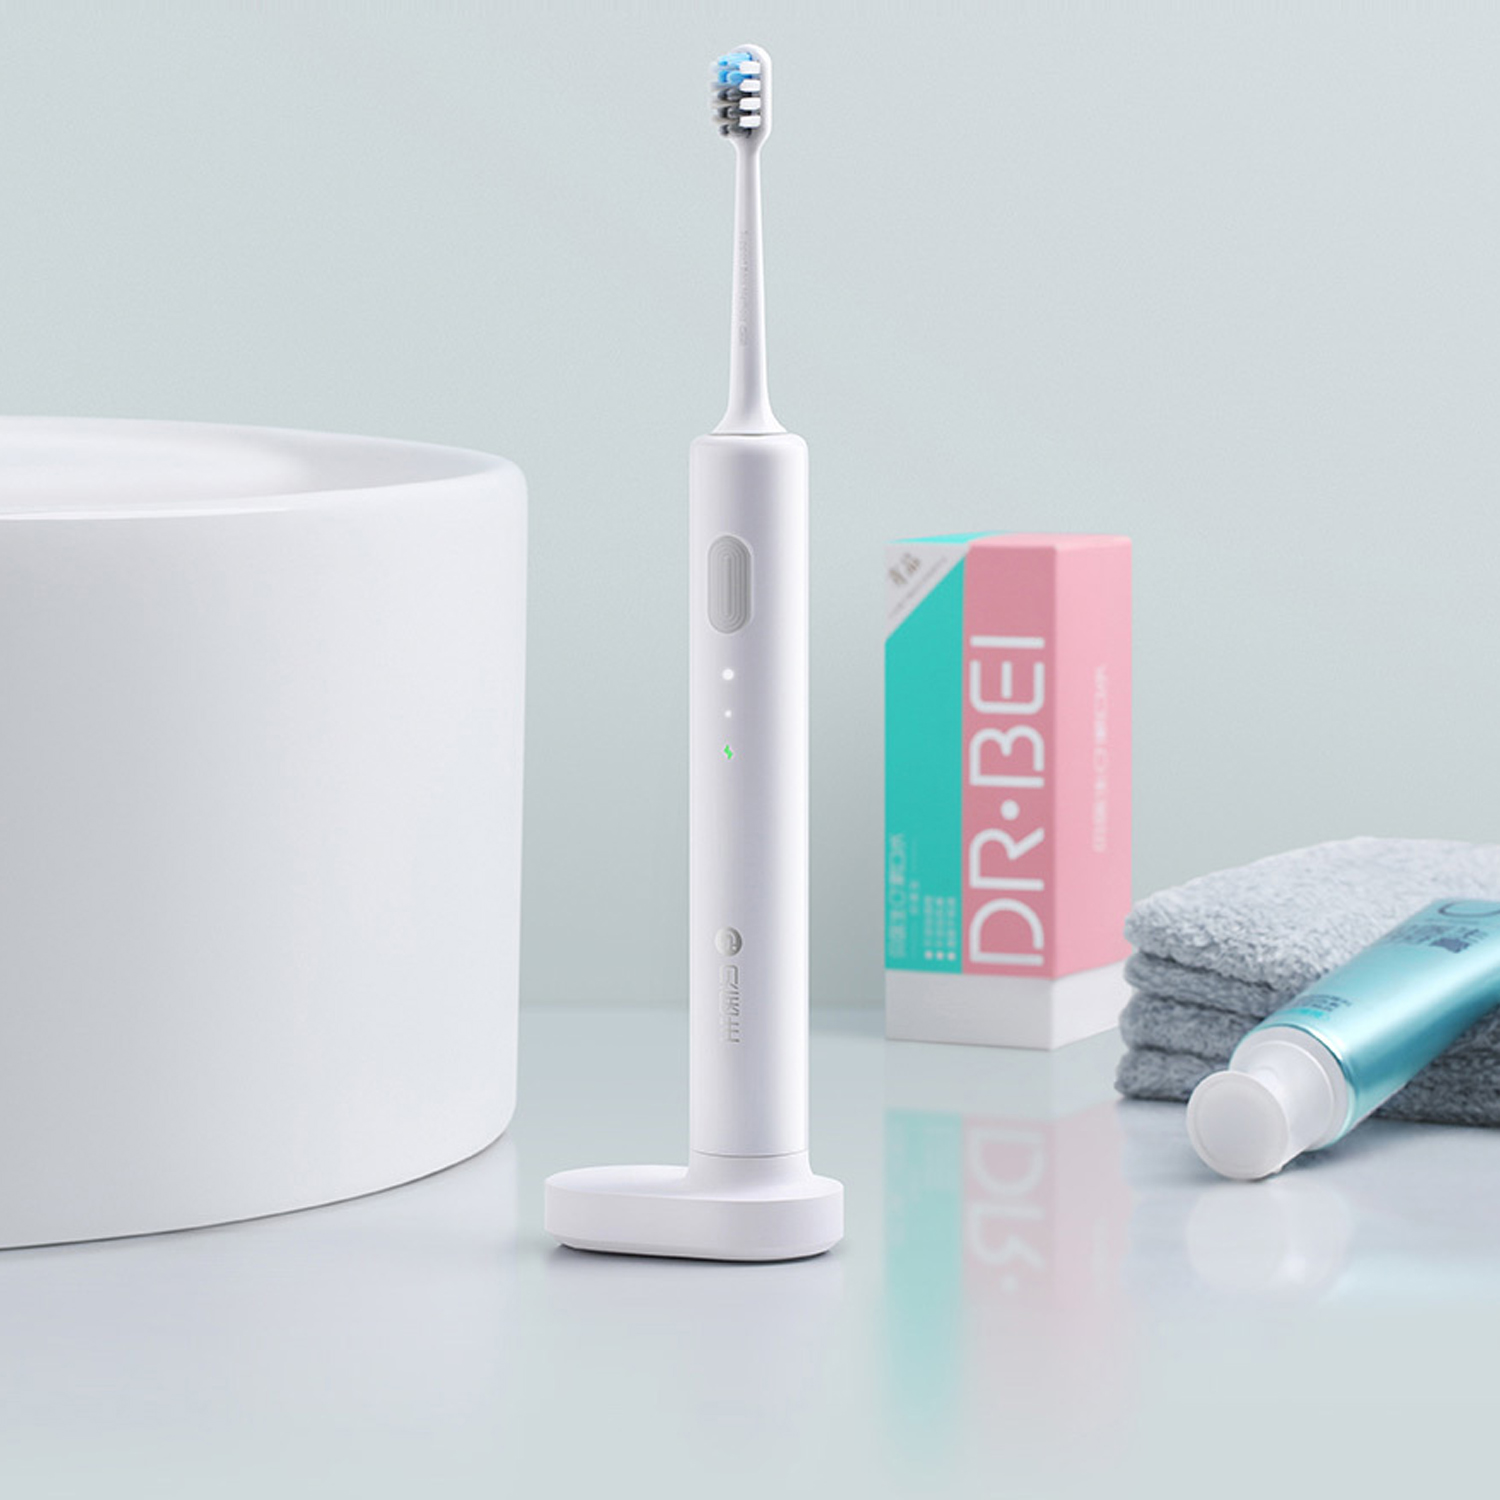 Dr. Bet-C01 2 Brush Modes Essence Sonic Electric Wireless USB Rechargeable Toothbrush IPX7 Waterproof With 2 Toothbrush Head from Xiaomi Youpin